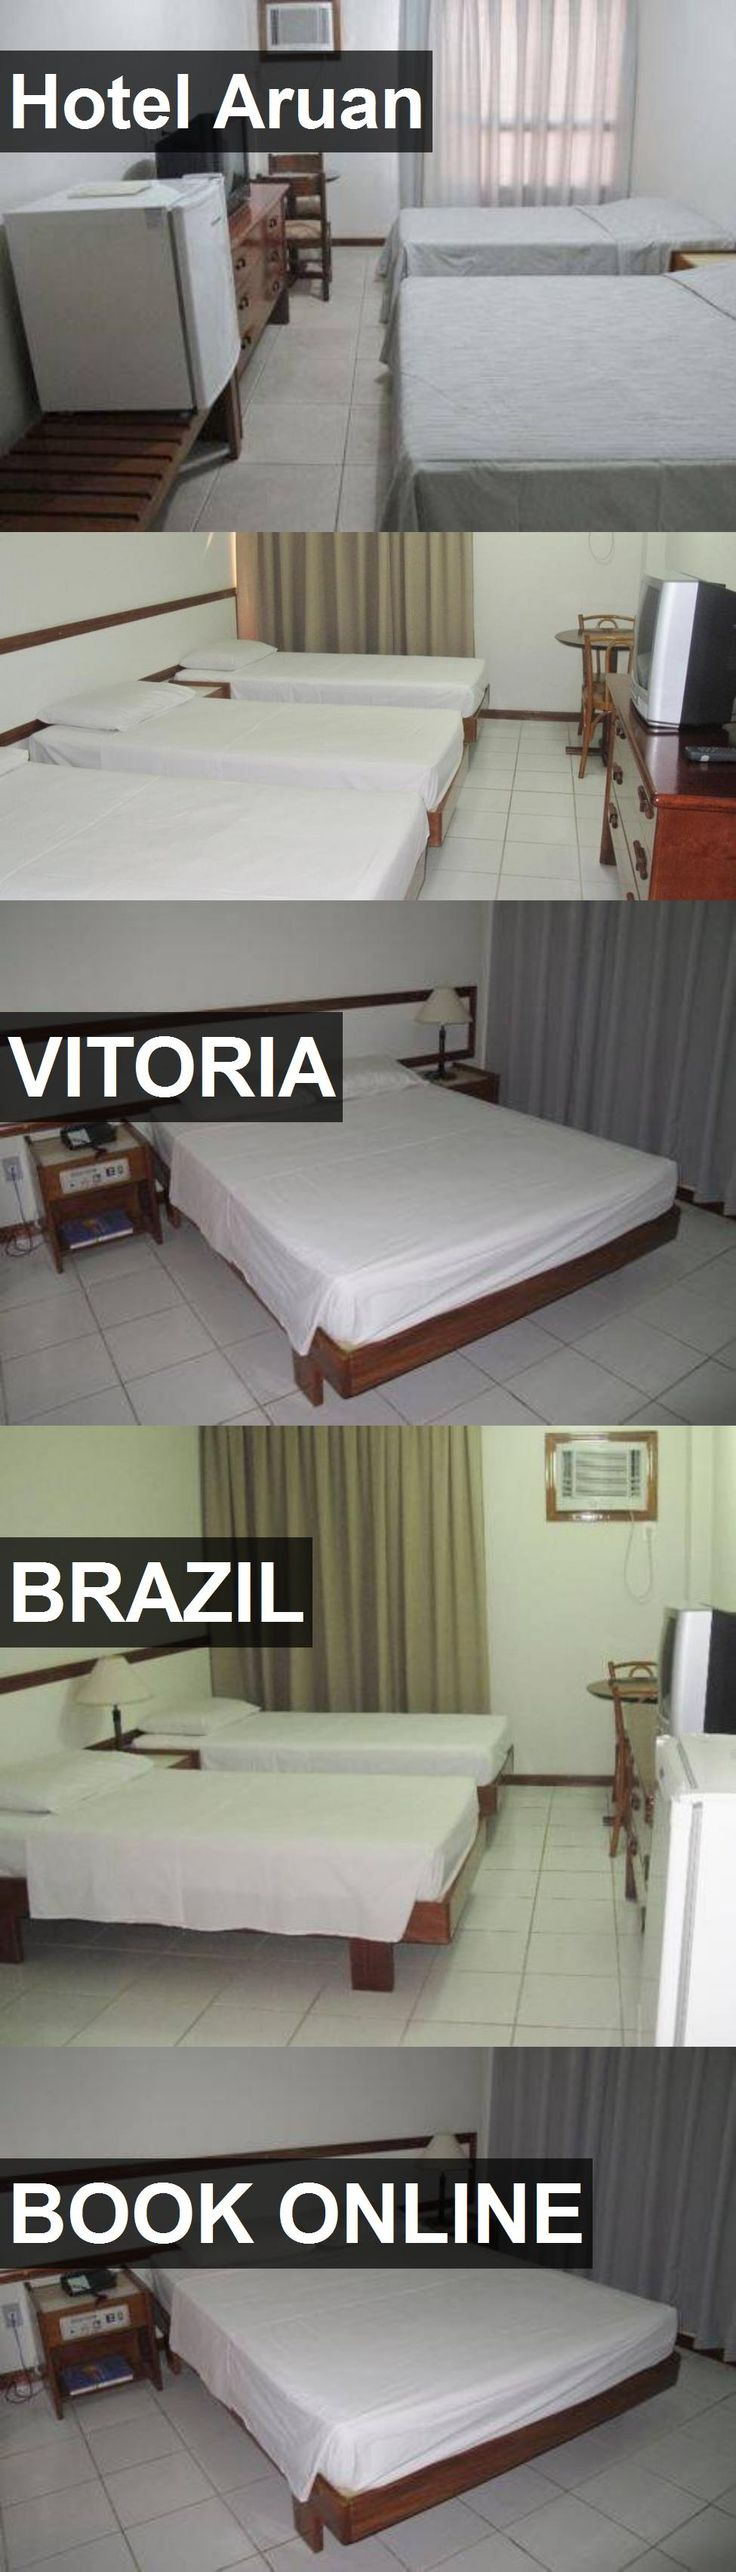 Hotel Aruan in Vitoria, Brazil. For more information, photos, reviews and best prices please follow the link. #Brazil #Vitoria #travel #vacation #hotel